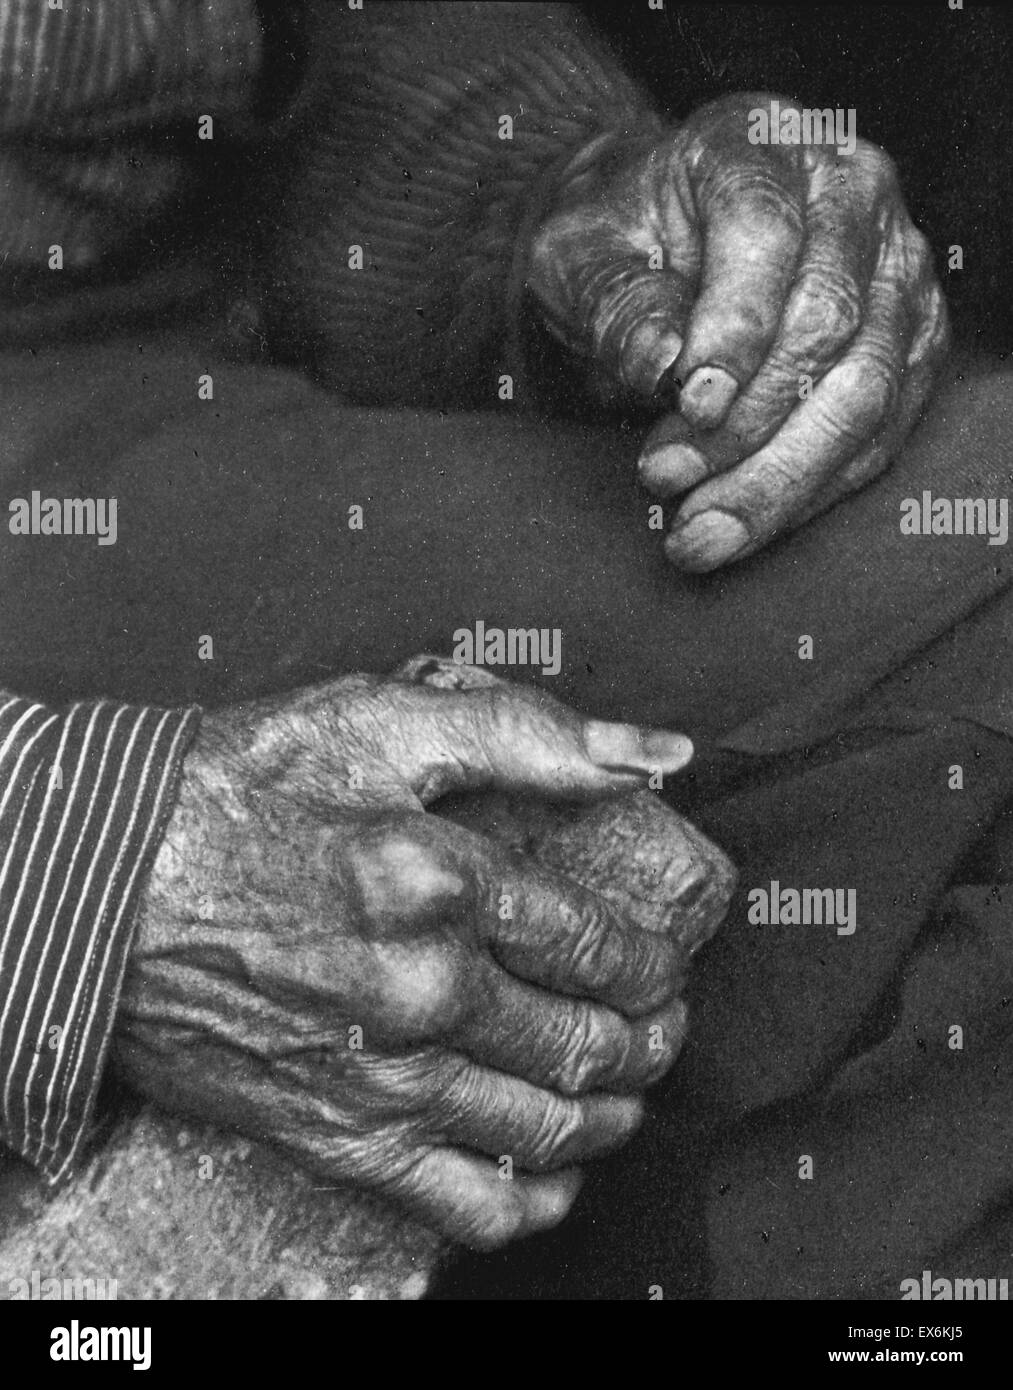 Black and white photograph of a labourer's hands. Created by Doris Ulmann (1882-1934) American photographer. - Stock Image